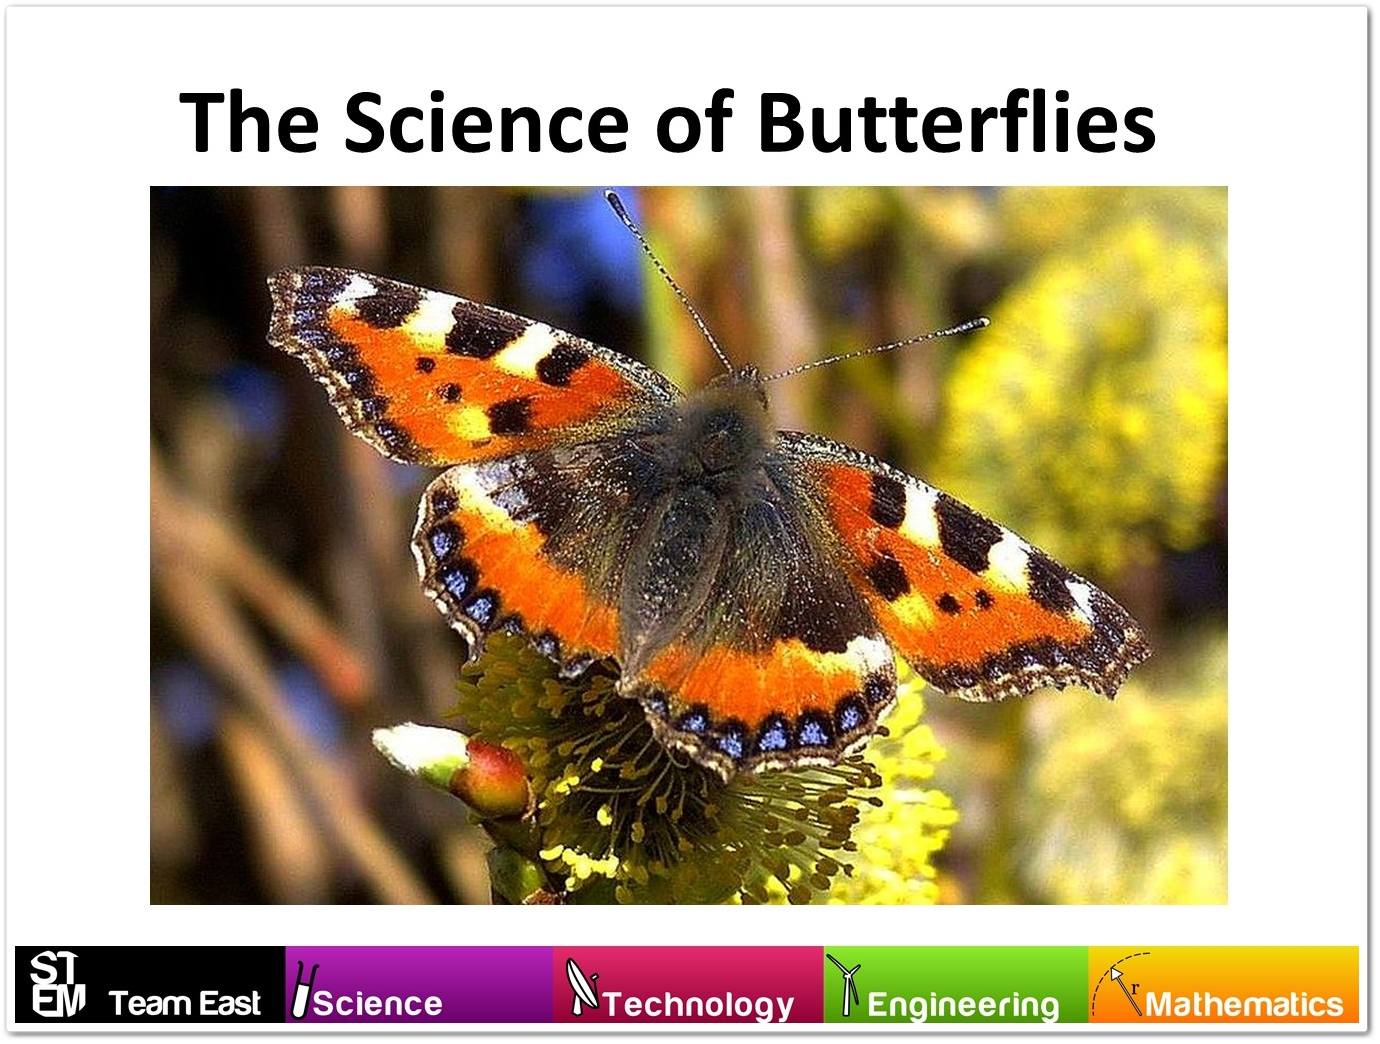 butterfly-science-updated-2016_2